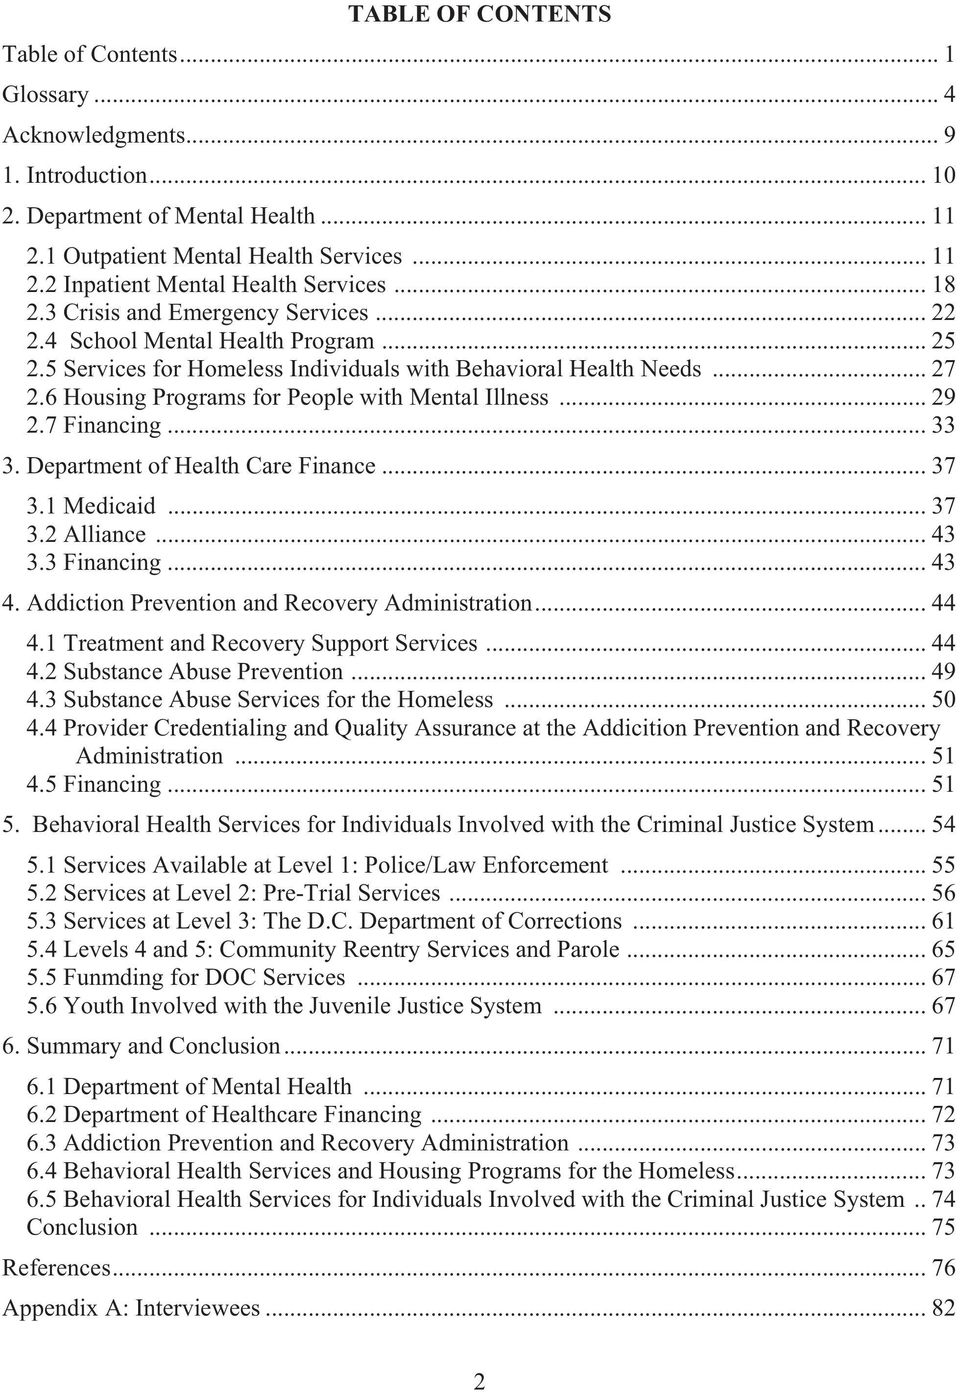 6 Housing Programs for People with Mental Illness... 29 2.7 Financing... 33 3. Department of Health Care Finance... 37 3.1 Medicaid... 37 3.2 Alliance... 43 3.3 Financing... 43 4.